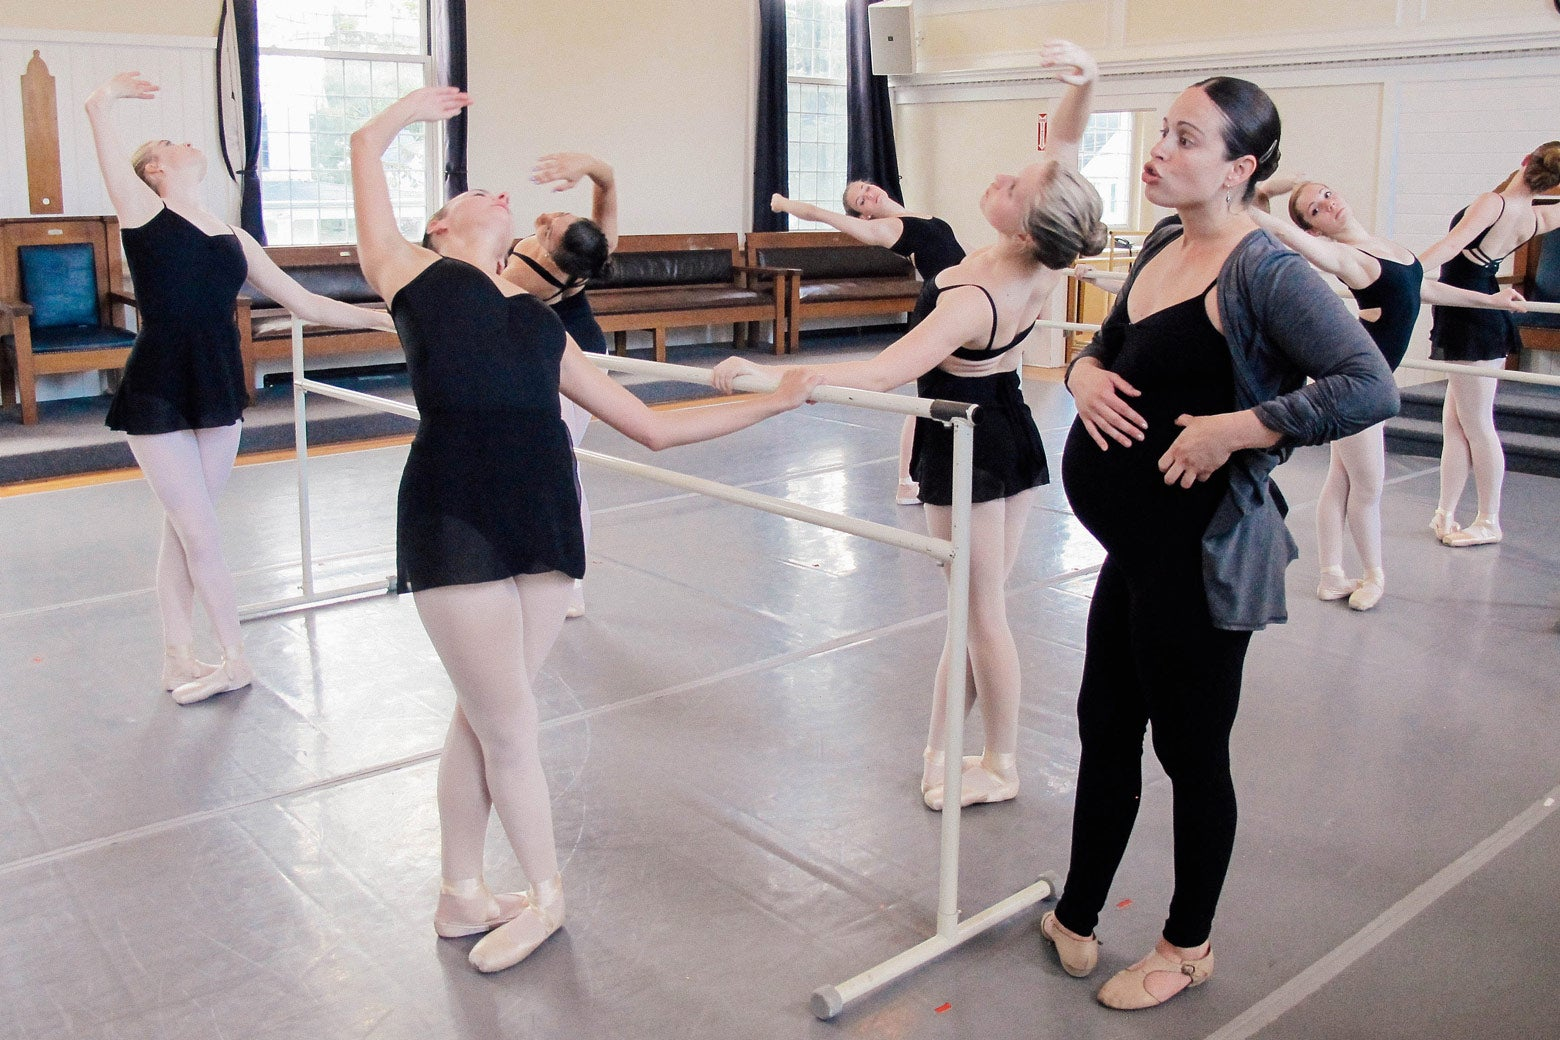 Anecia teaches students on the bar in a ballet class.